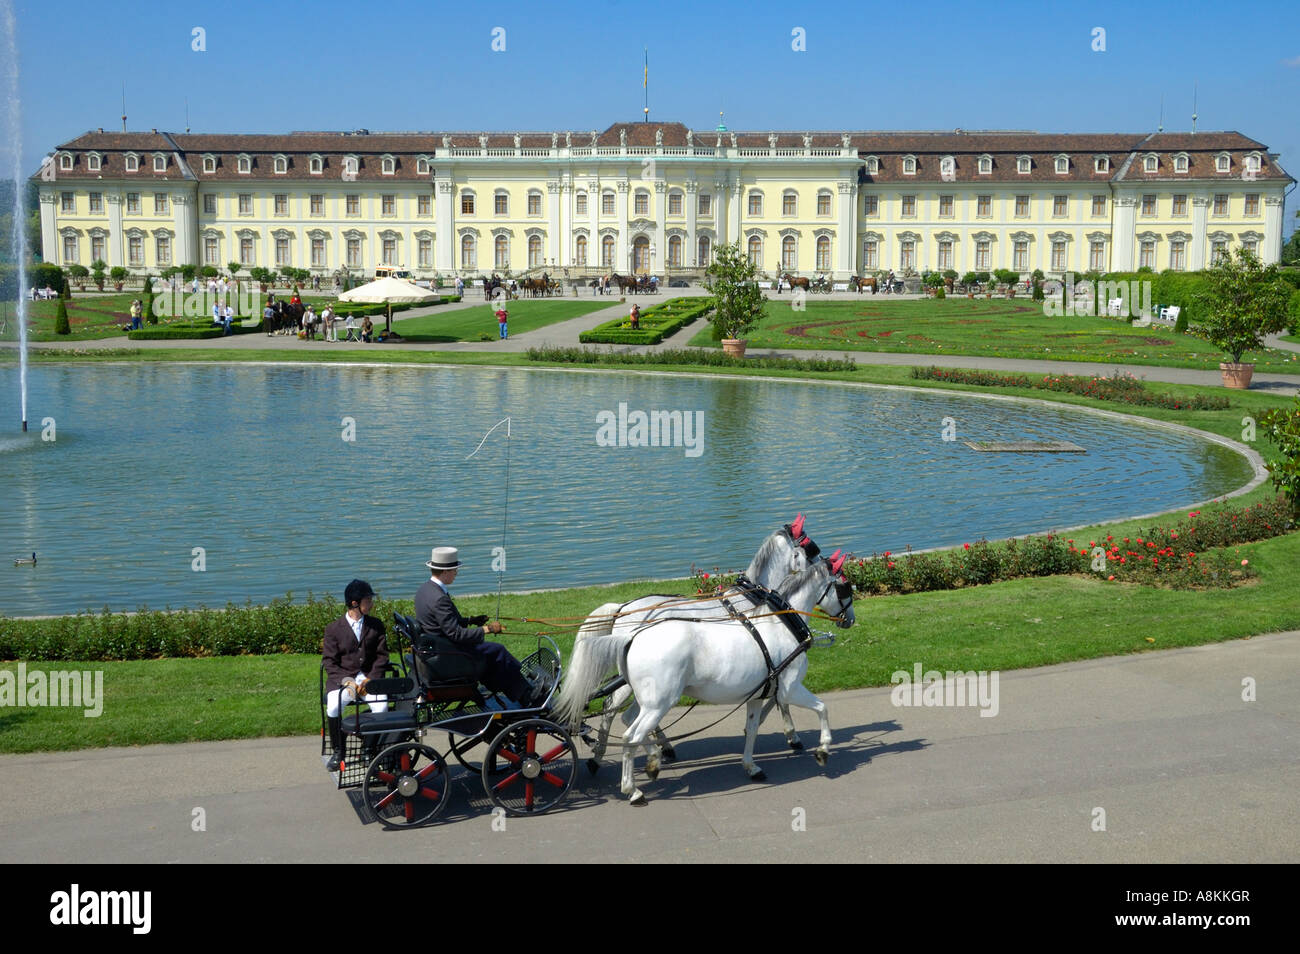 Horse-drawn carriage in front of Ludwigsburg Palace, Ludwigsburg, Baden-Wuerttemberg, Germany, Europe Stock Photo